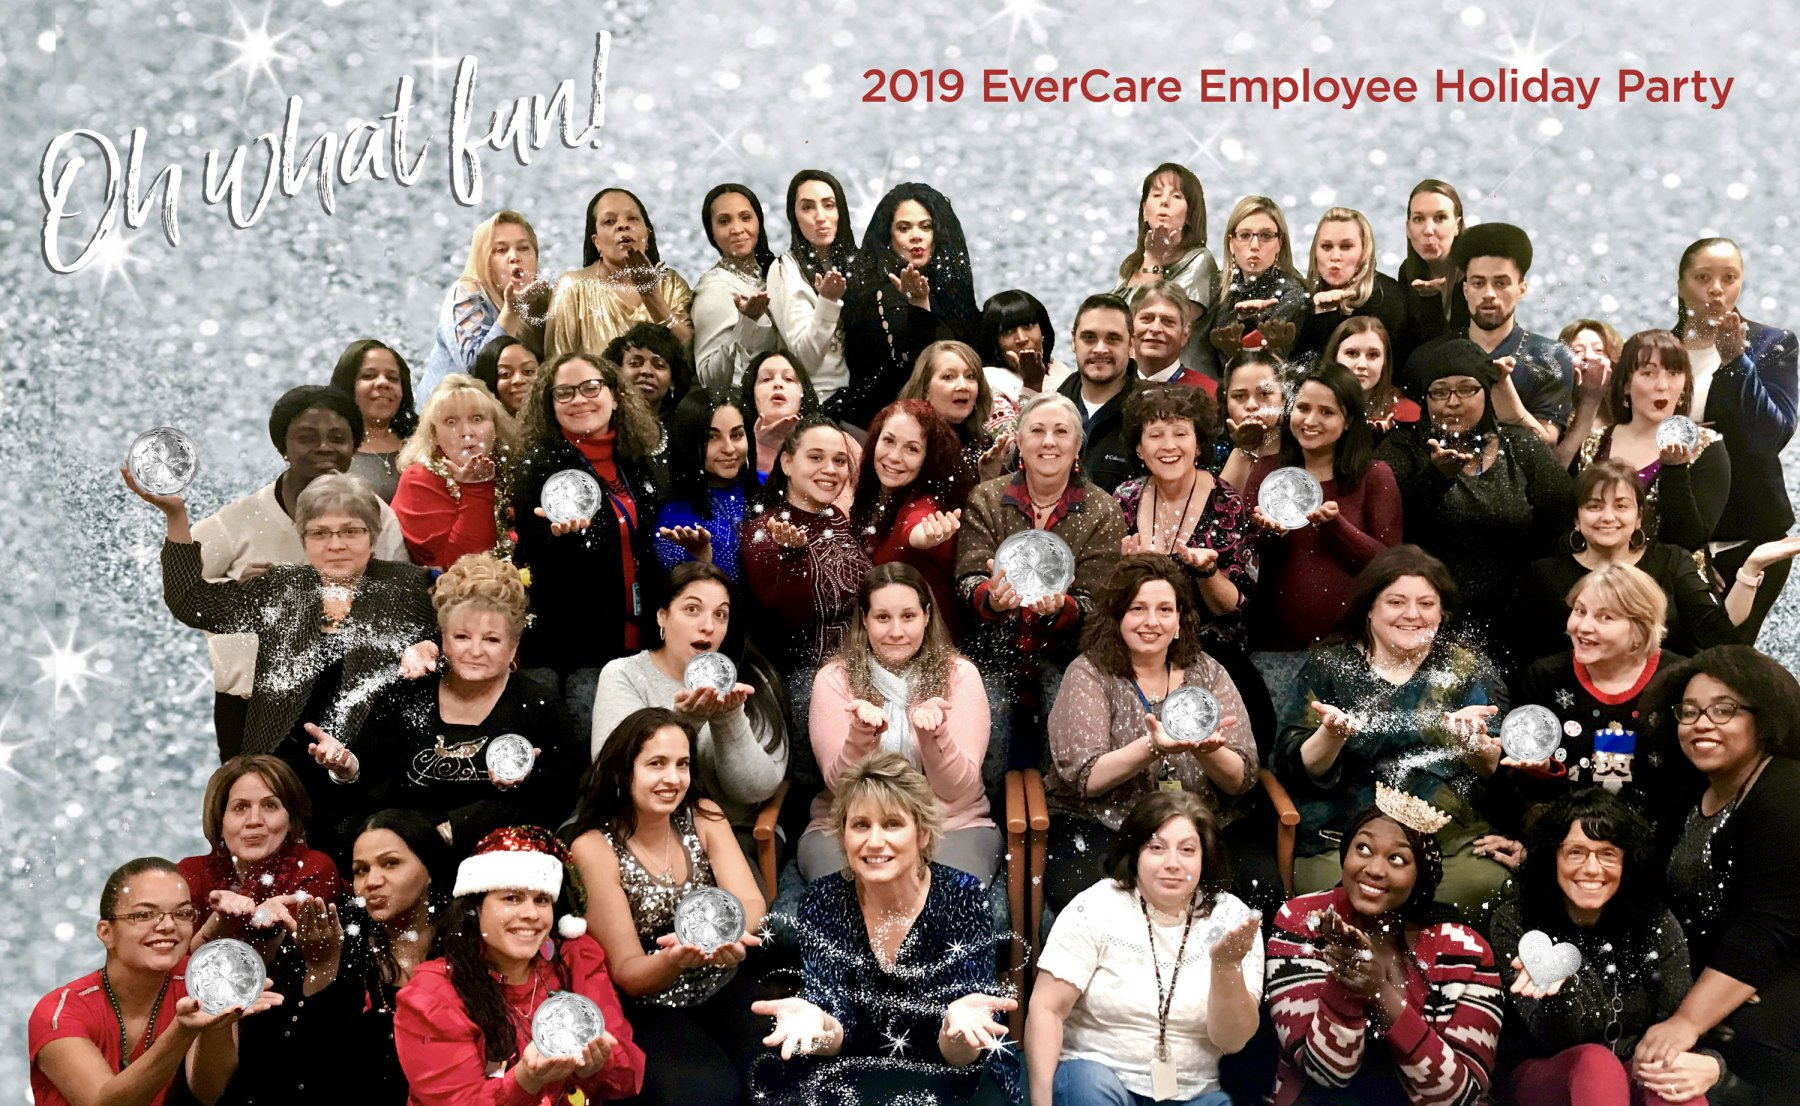 Oh What Fun! Employee Annual Holiday Photo